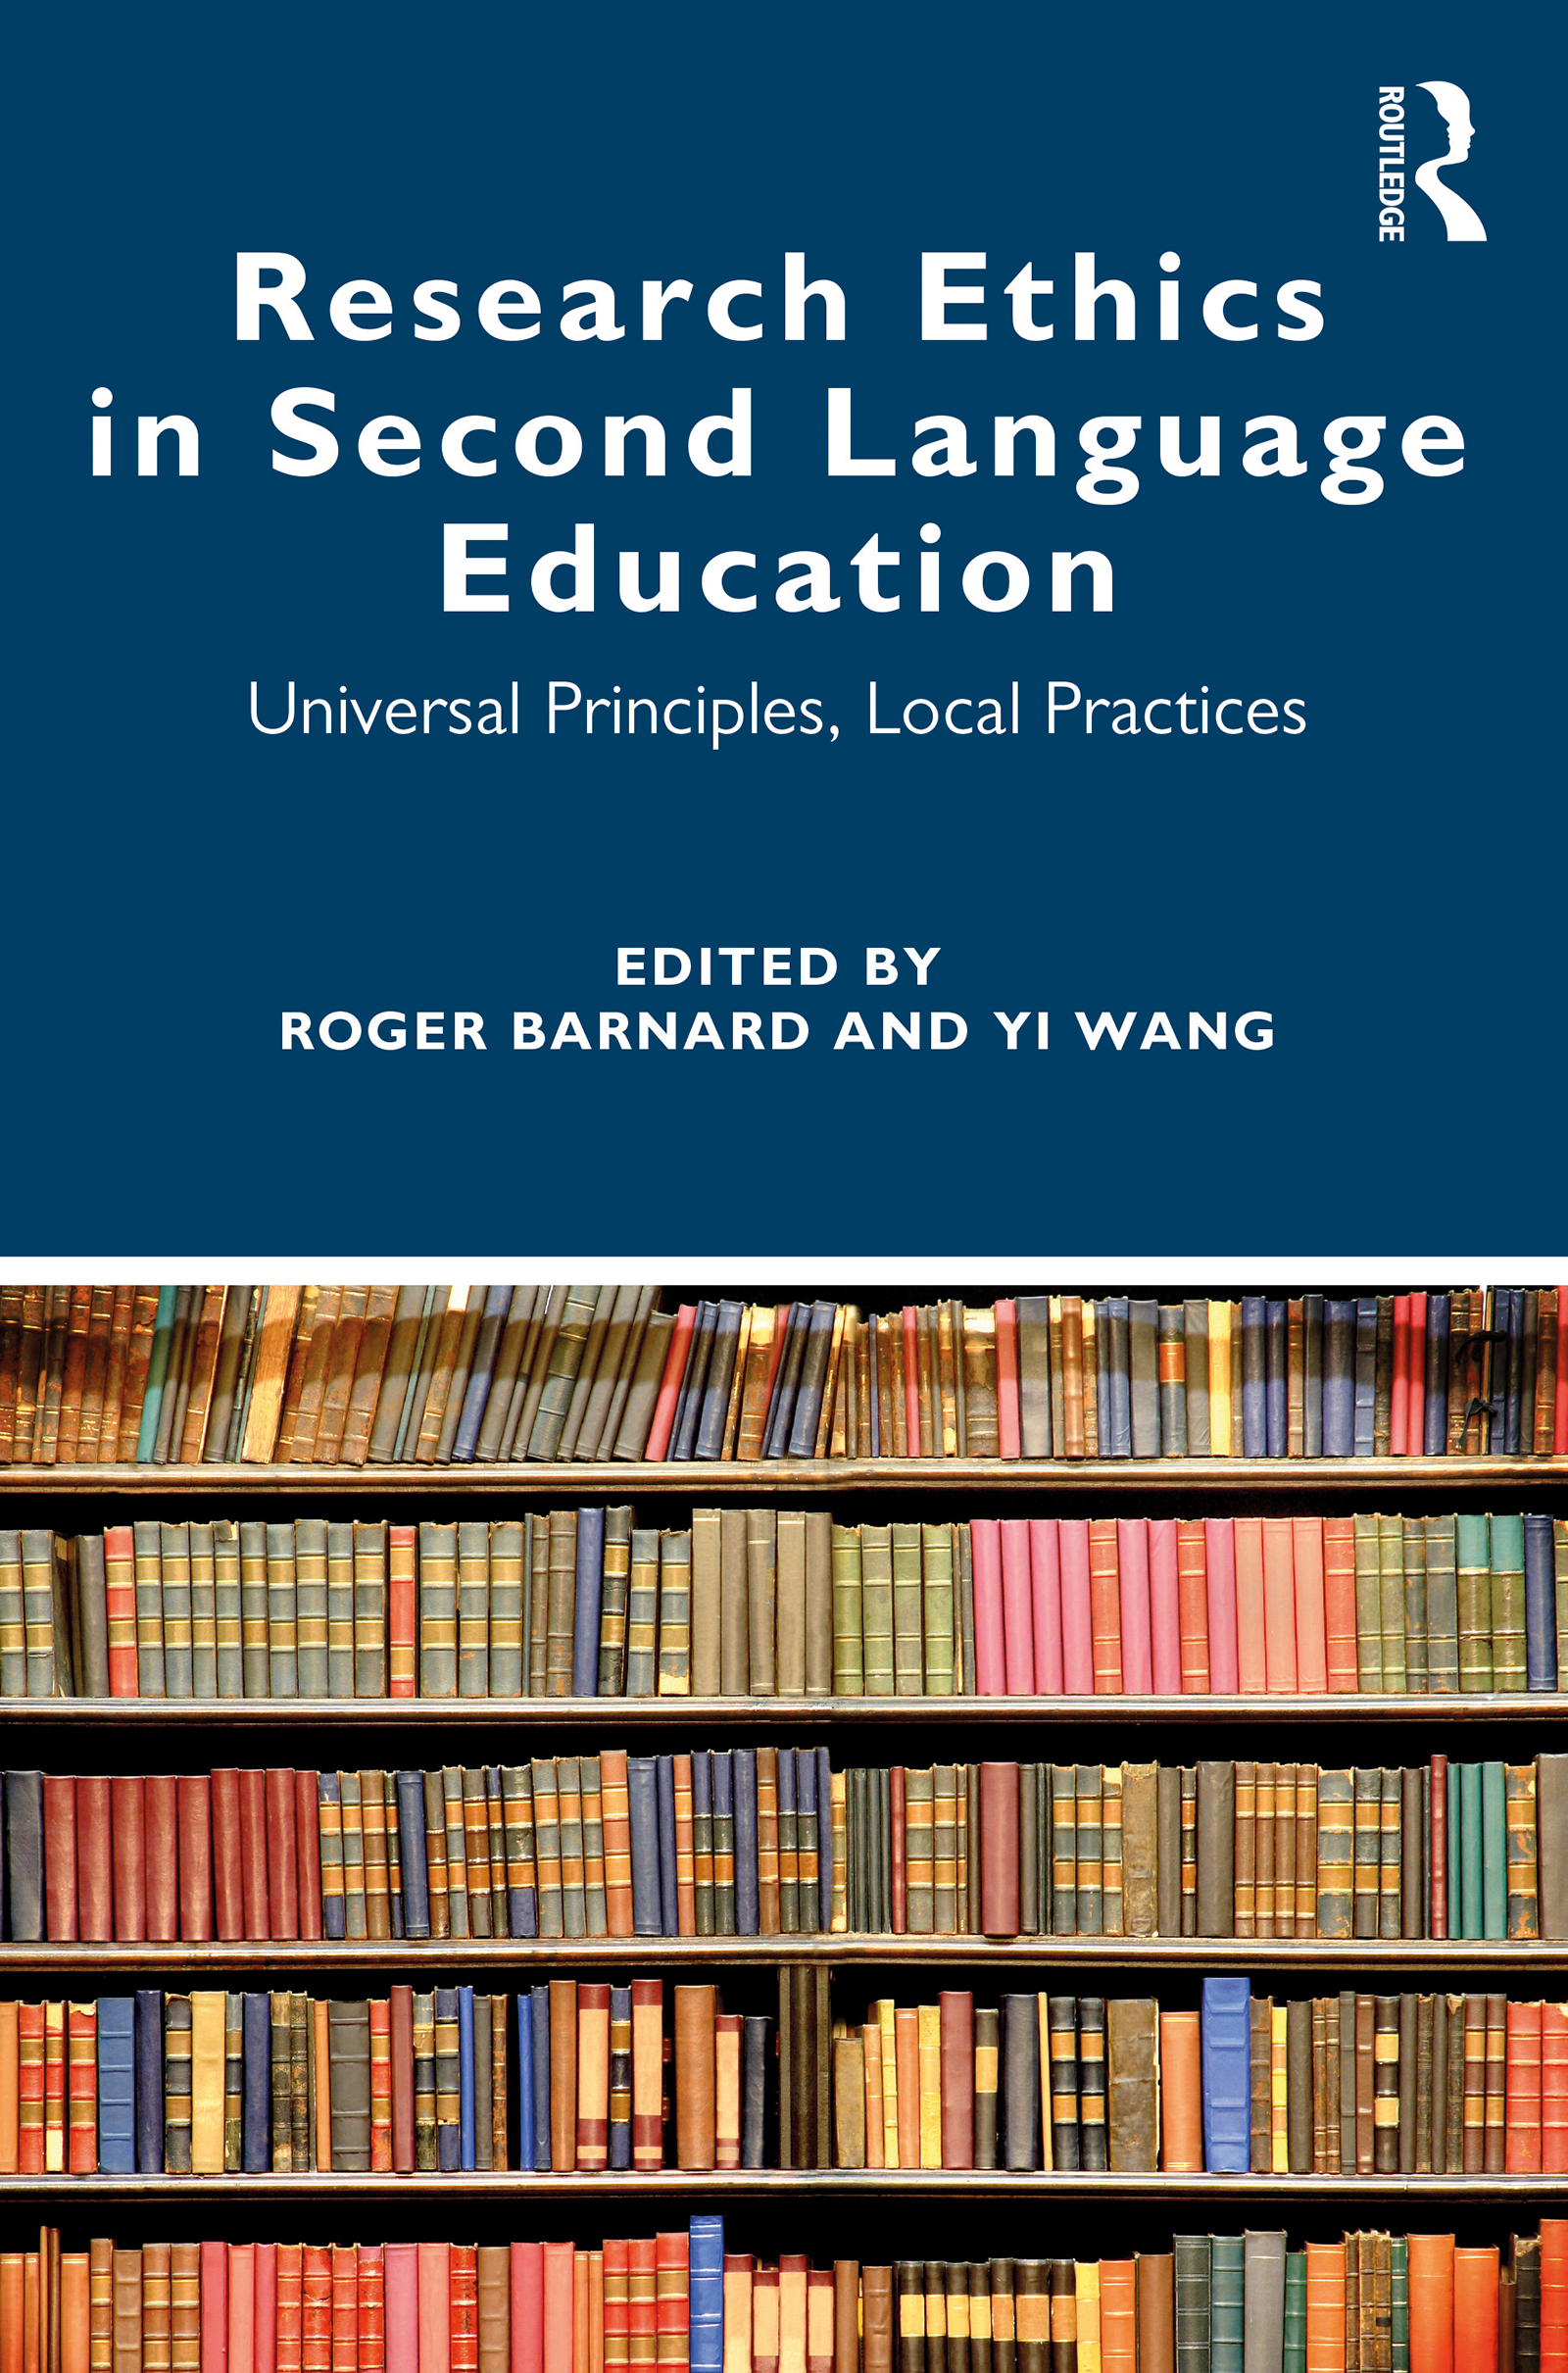 Research Ethics in Second Language Education